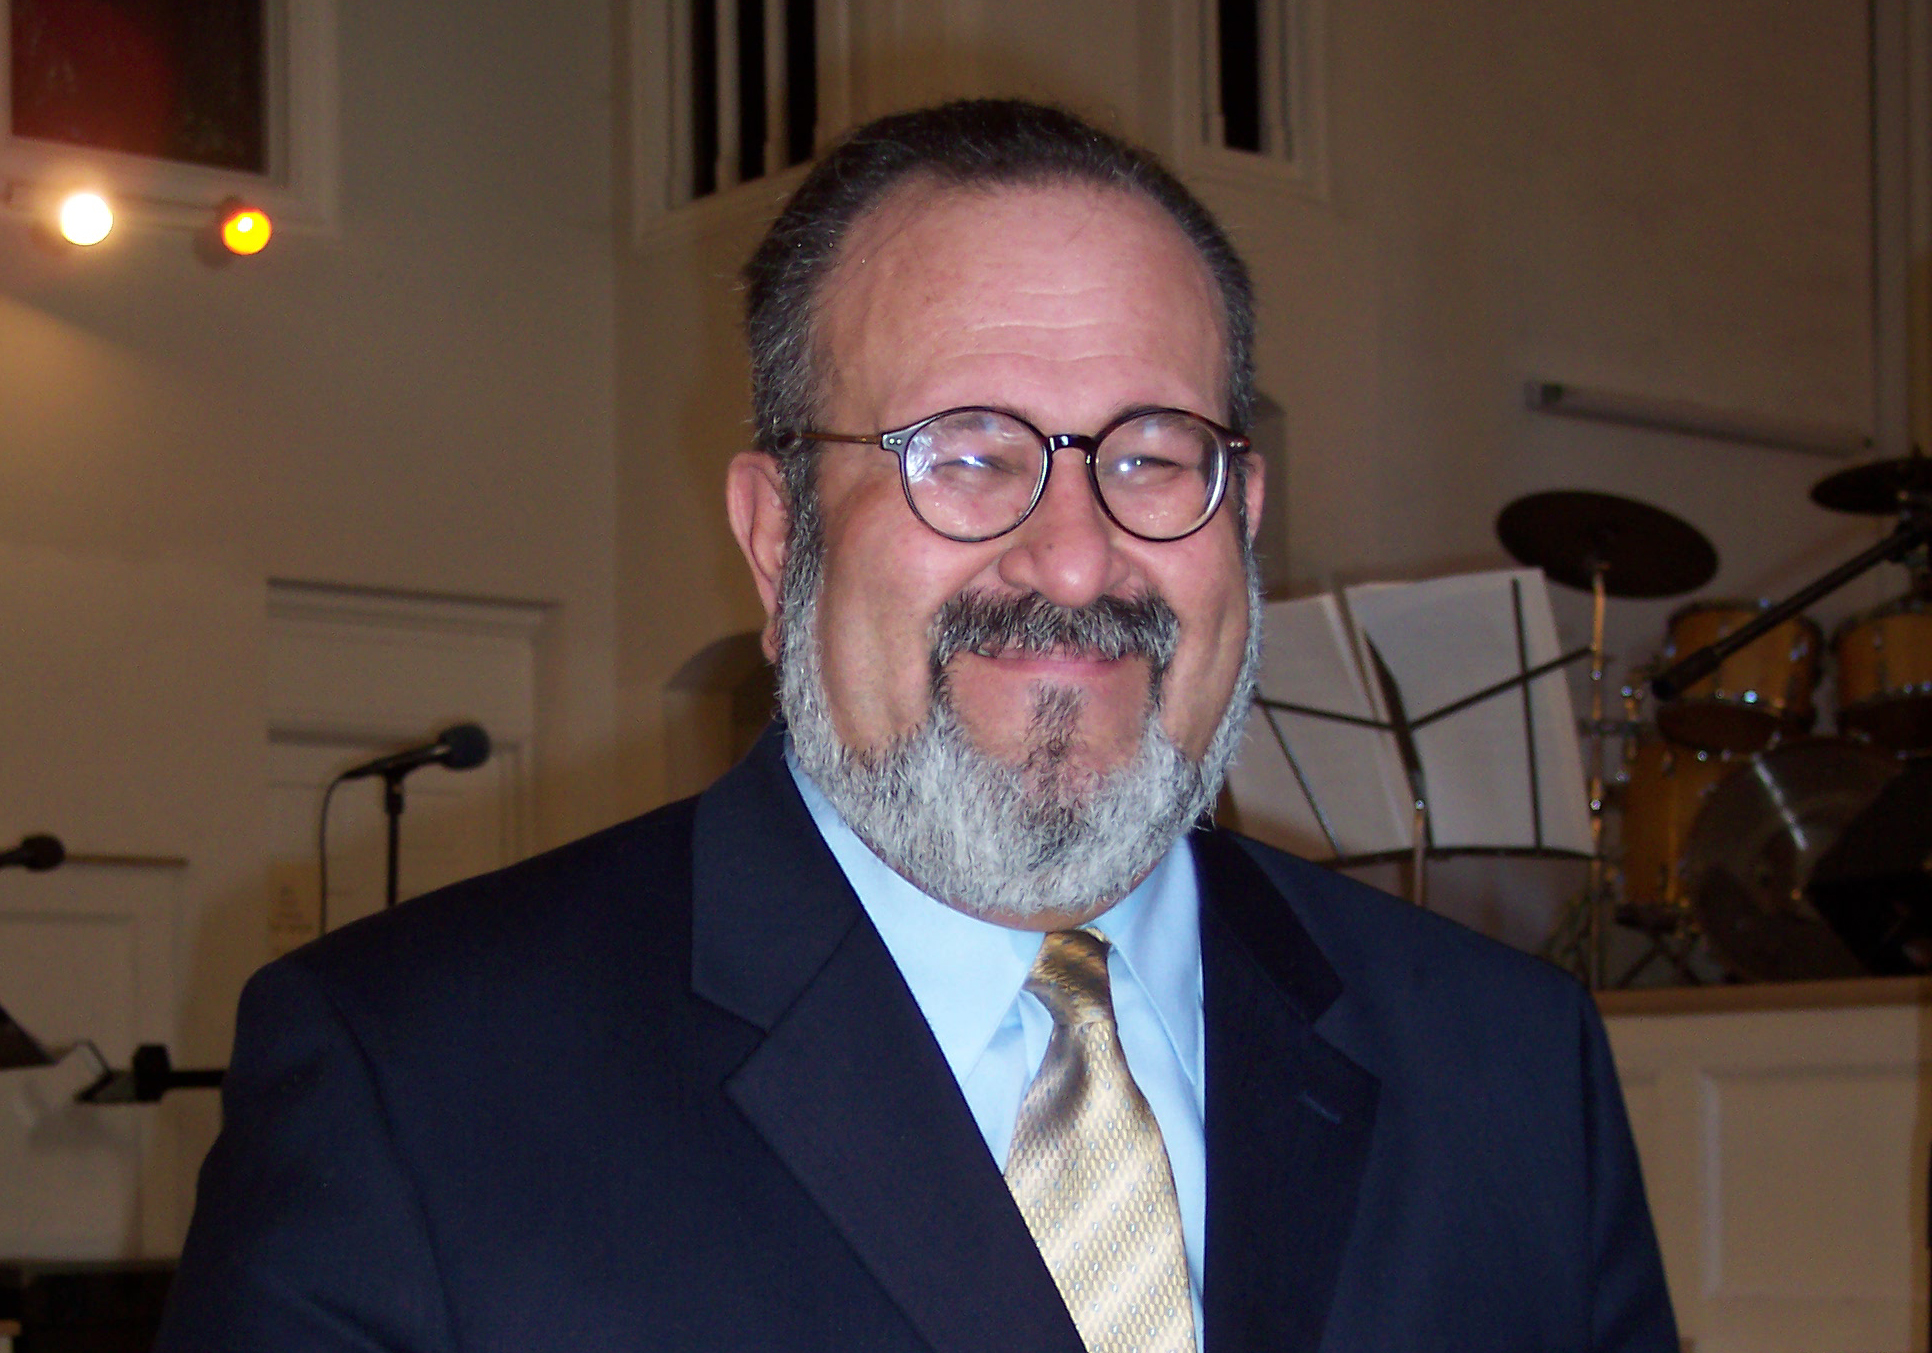 pastor-irving-rivera-fordham-manor-church